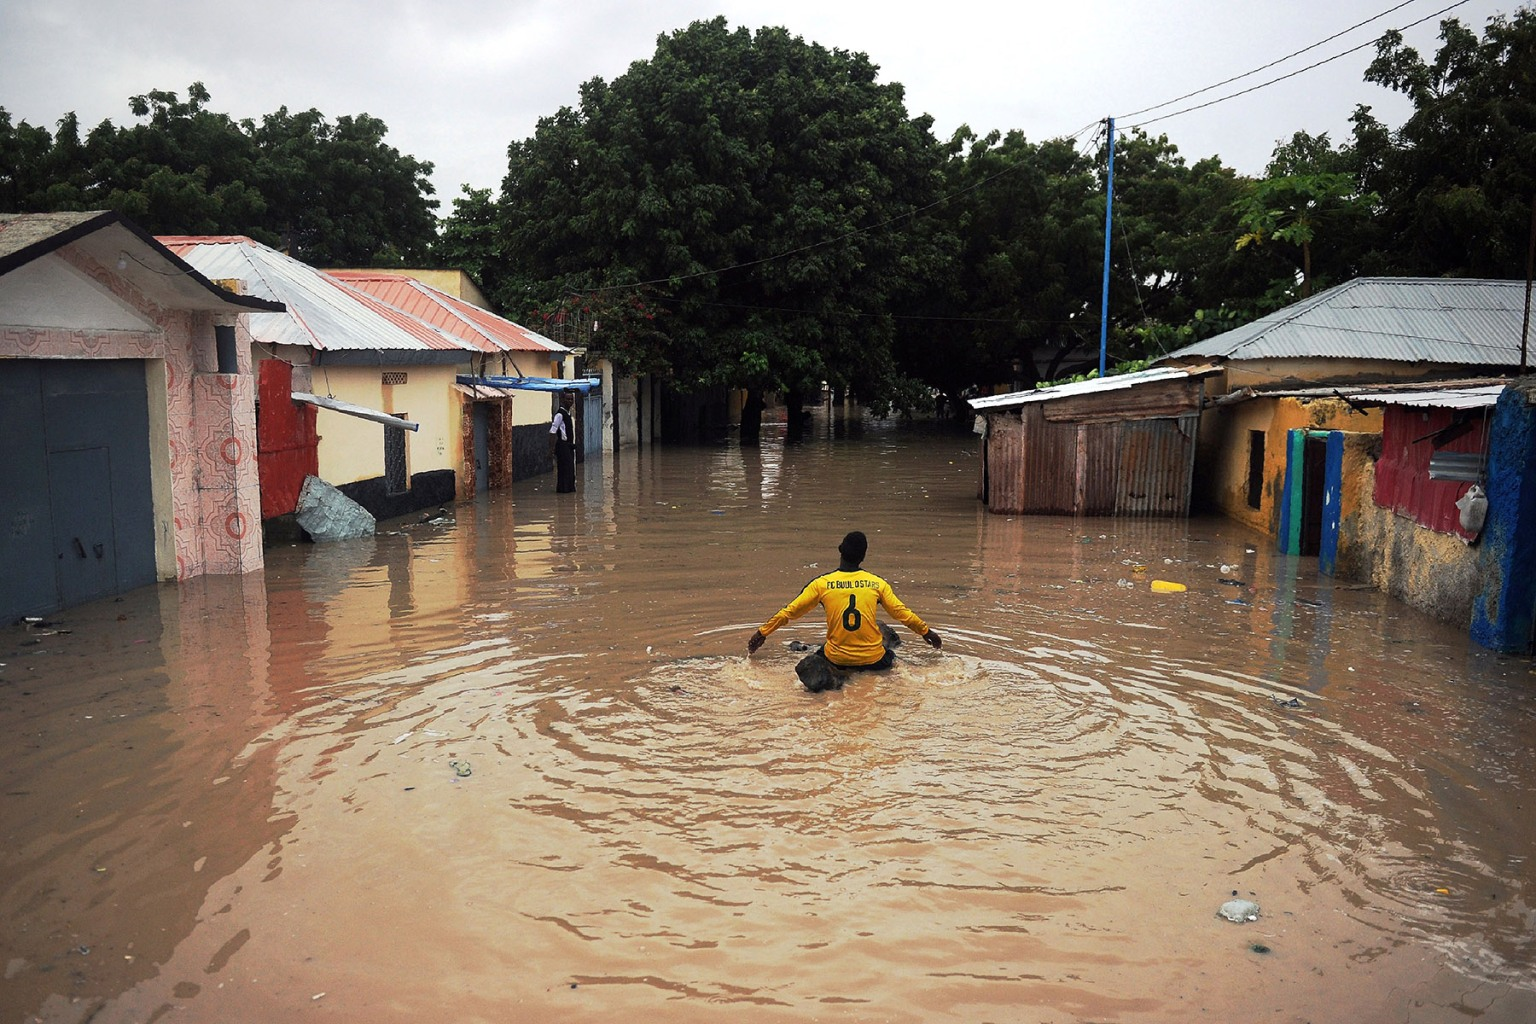 A boy on a log floats down a flooded street in the Wadajir district of Mogadishu on May 20 after homes were inundated in Somalia's capital following heavy overnight rainfall. MOHAMED ABDIWAHAB/AFP/Getty Images